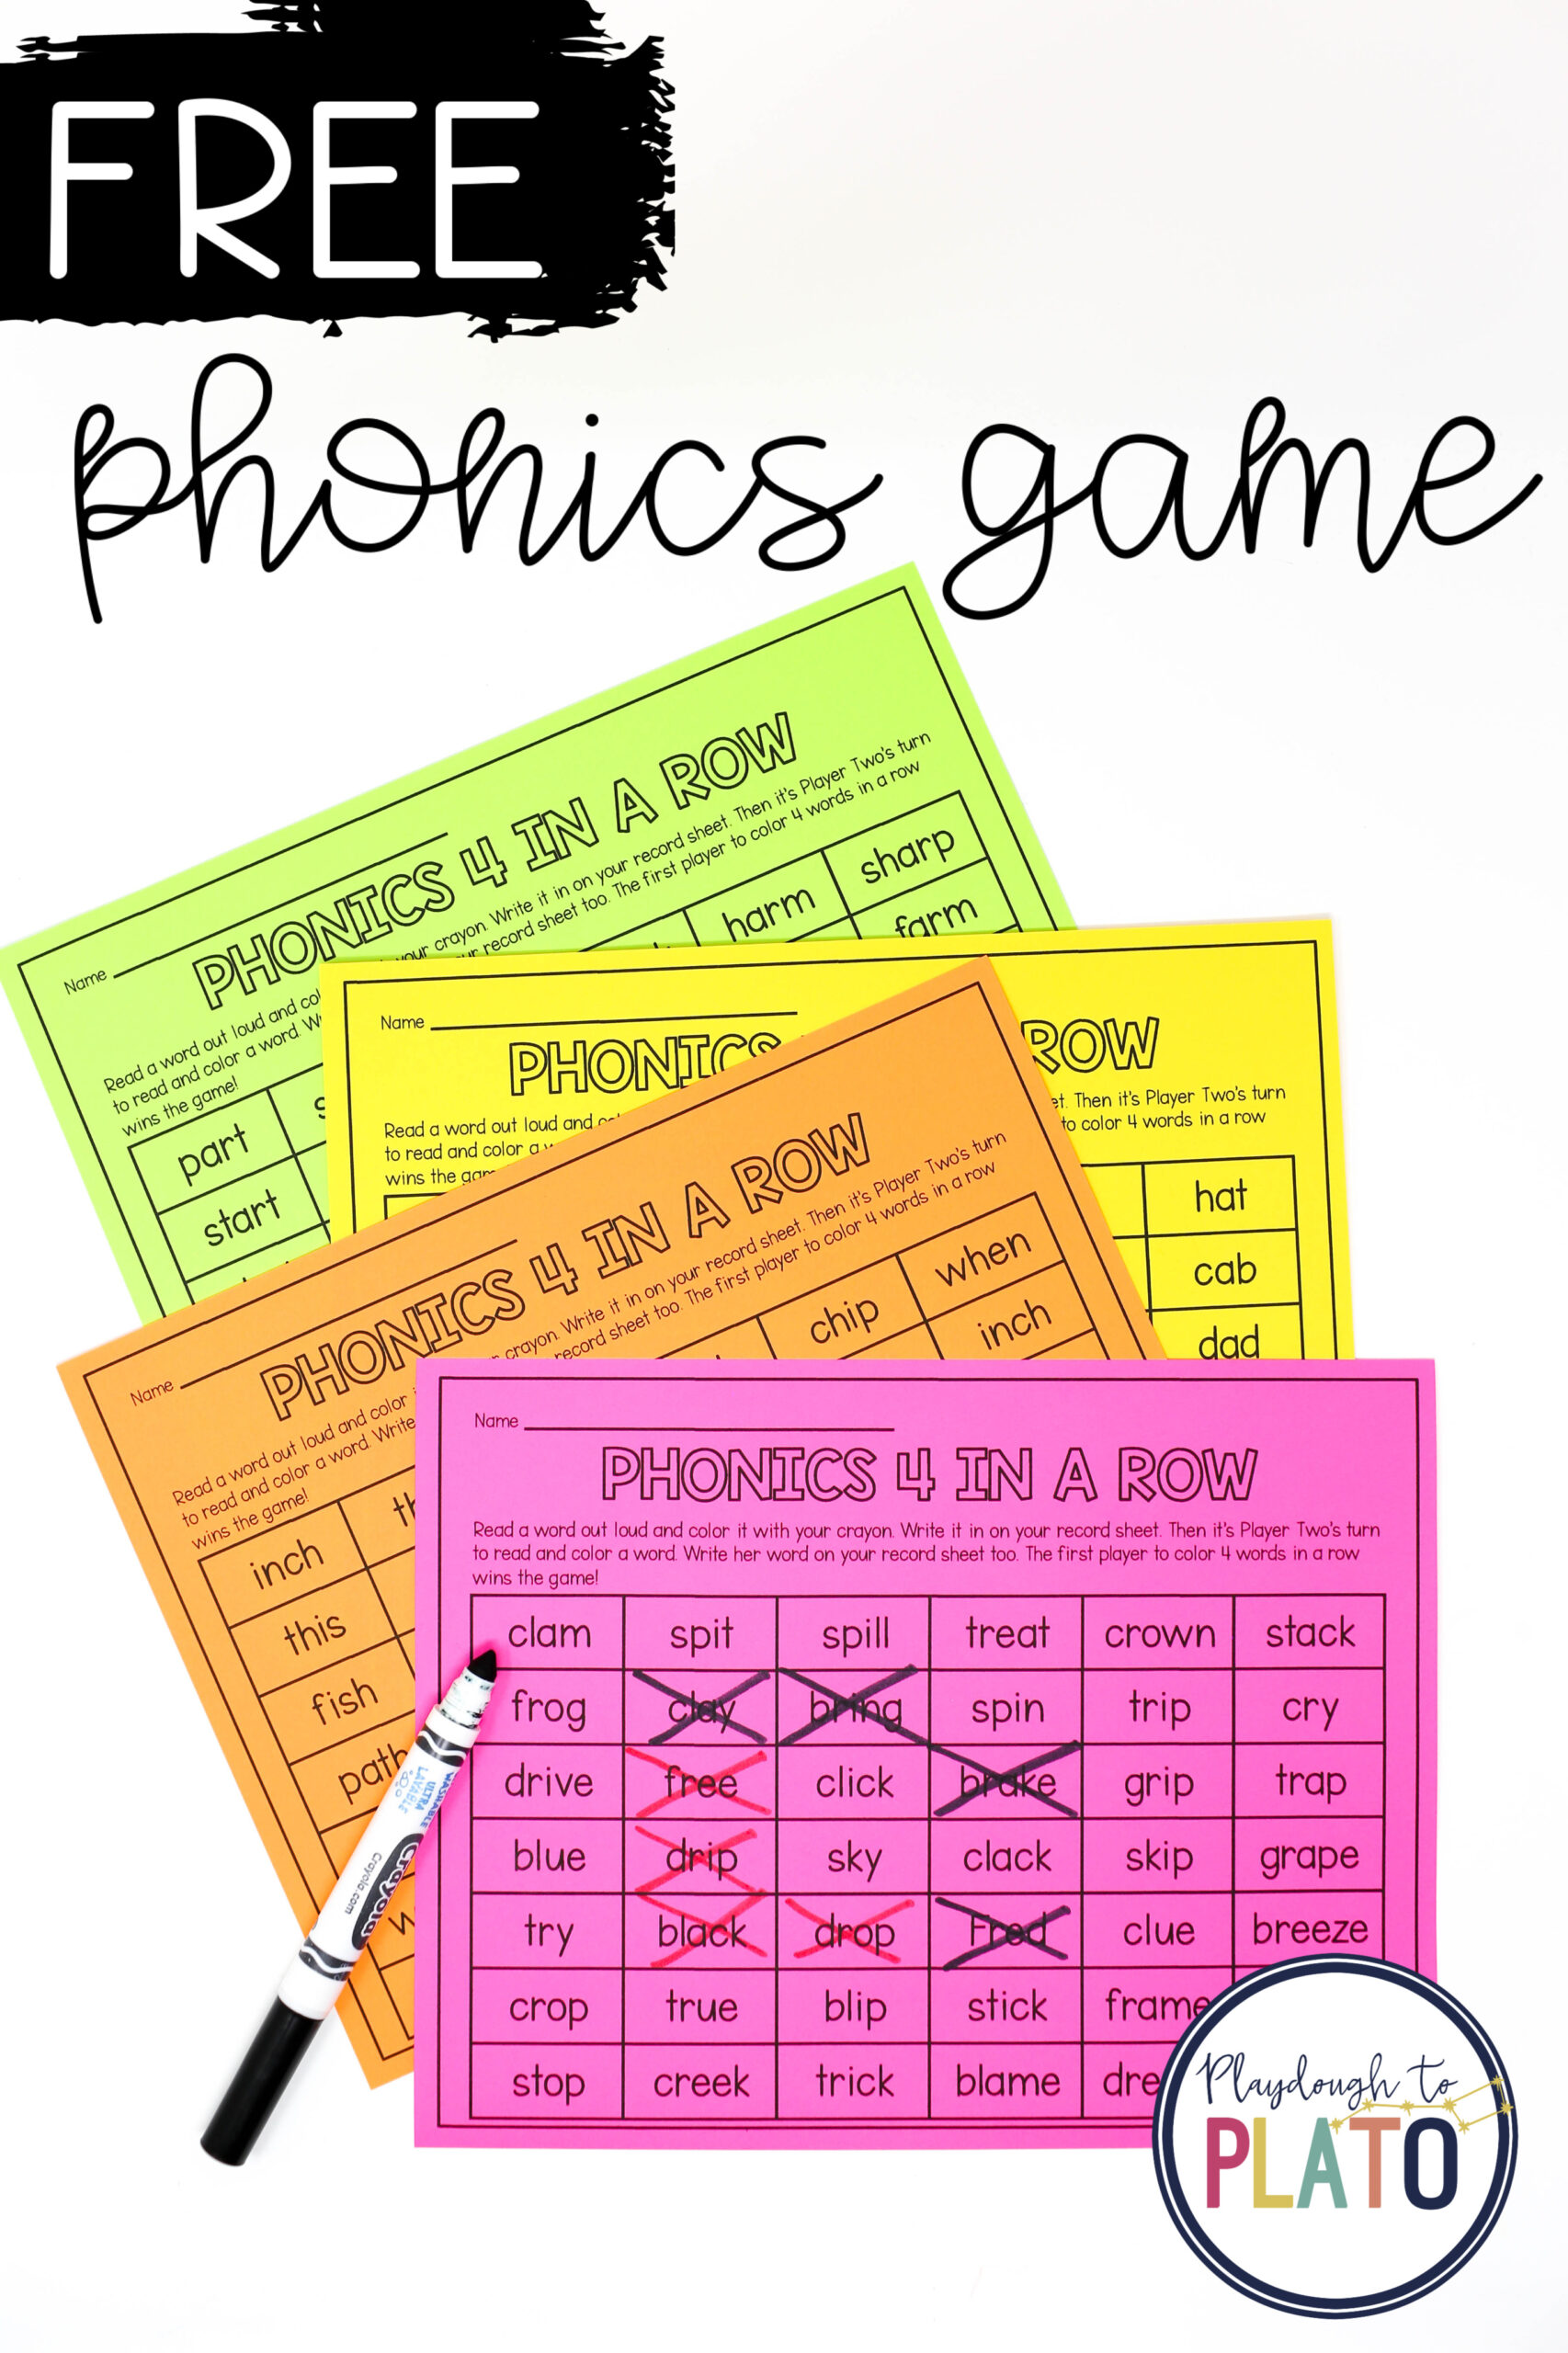 Phonics 4 in a Row